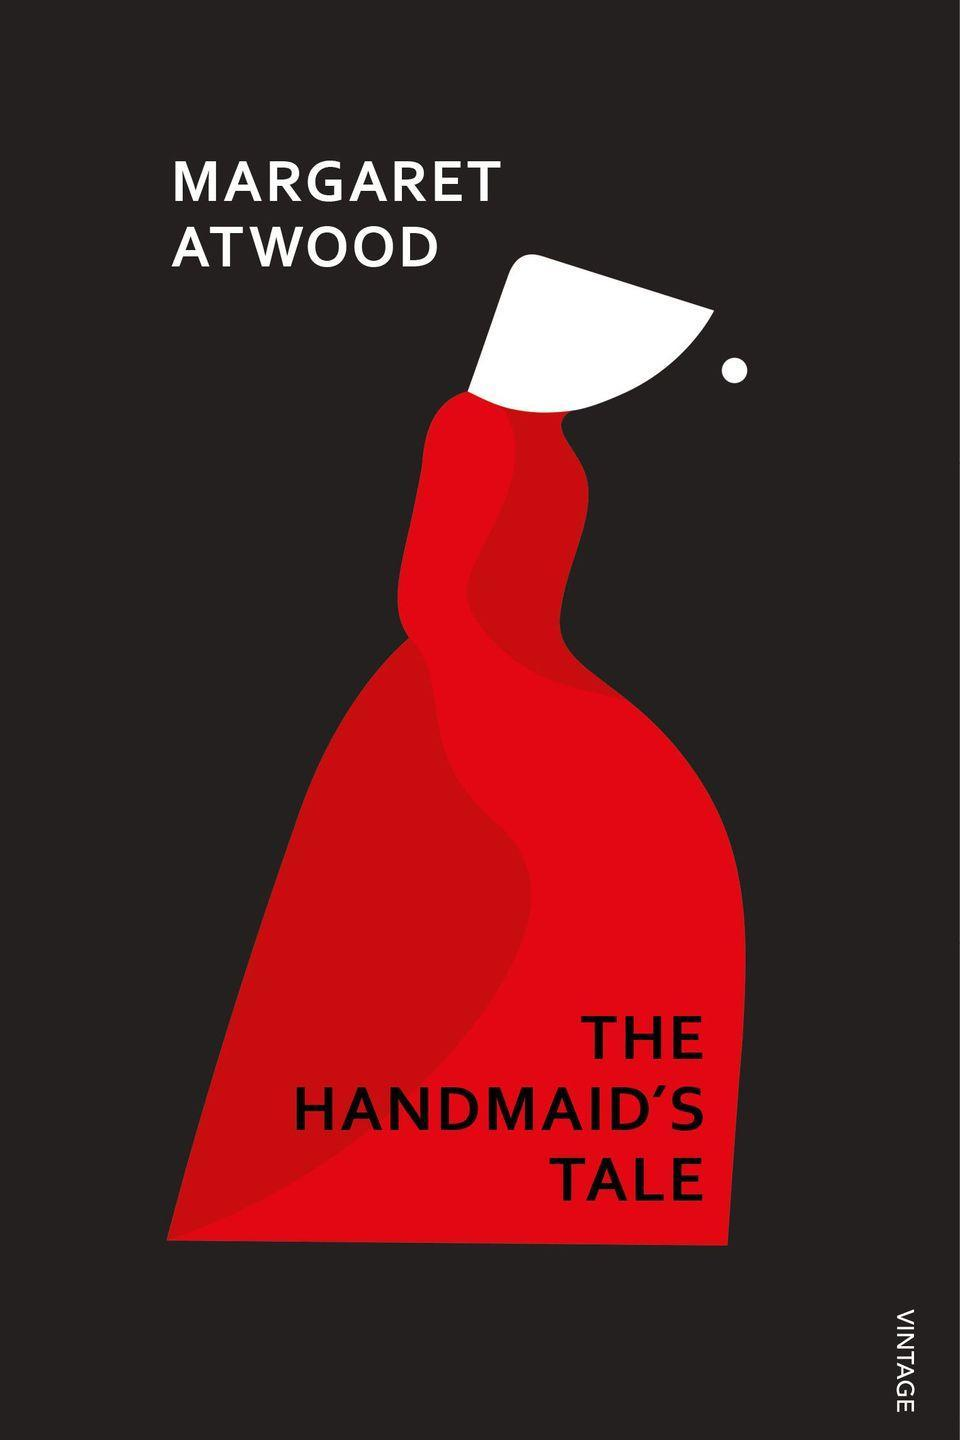 """<p><a class=""""link rapid-noclick-resp"""" href=""""https://www.amazon.co.uk/Handmaids-Tale-Contemporary-Classics/dp/0099740915?tag=hearstuk-yahoo-21&ascsubtag=%5Bartid%7C1927.g.35935432%5Bsrc%7Cyahoo-uk"""" rel=""""nofollow noopener"""" target=""""_blank"""" data-ylk=""""slk:SHOP NOW"""">SHOP NOW</a></p><p>Margaret Atwood's dystopian novel has been widely praised for its unnerving prescience in the modern world. Set in a future America where women are reduced to their reproductive usefulness, the female race are dehumanised by a repressive patriarchy. The Handmaid's Tale has sold over eight million copies worldwide since it was first published in 1985, proving just how relevant its themes still are. </p>"""